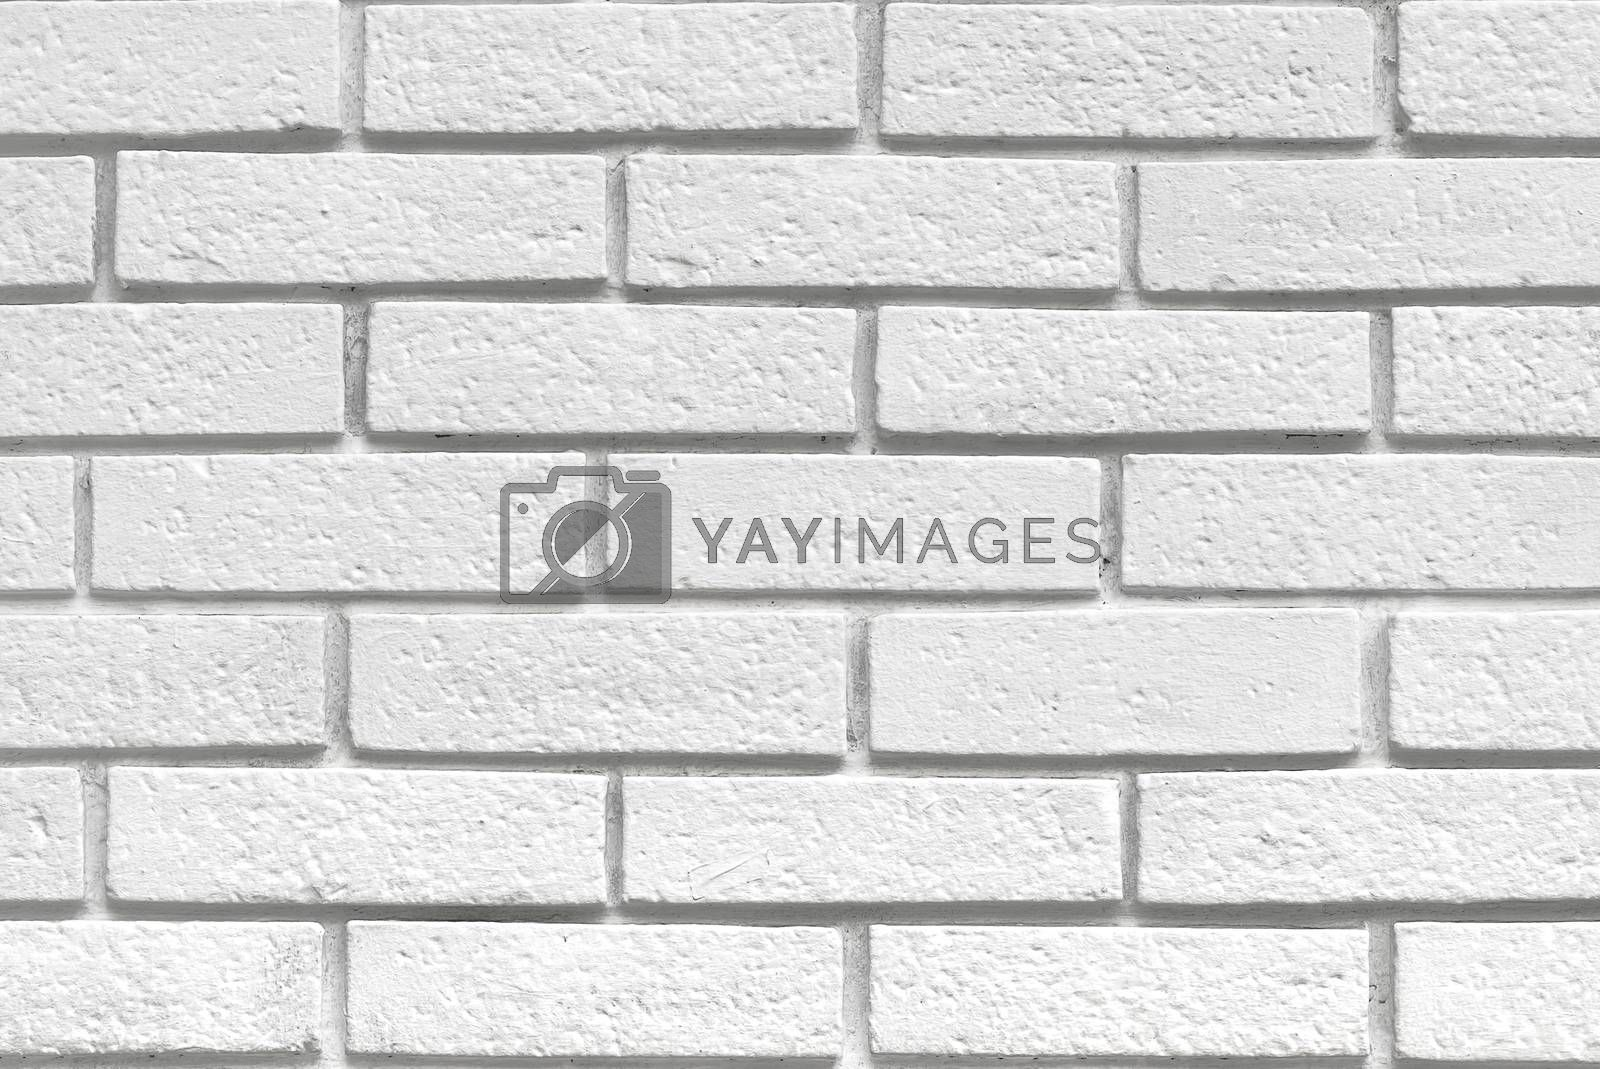 White bricks texture, surface of a urban exterior wall with brickwork pattern